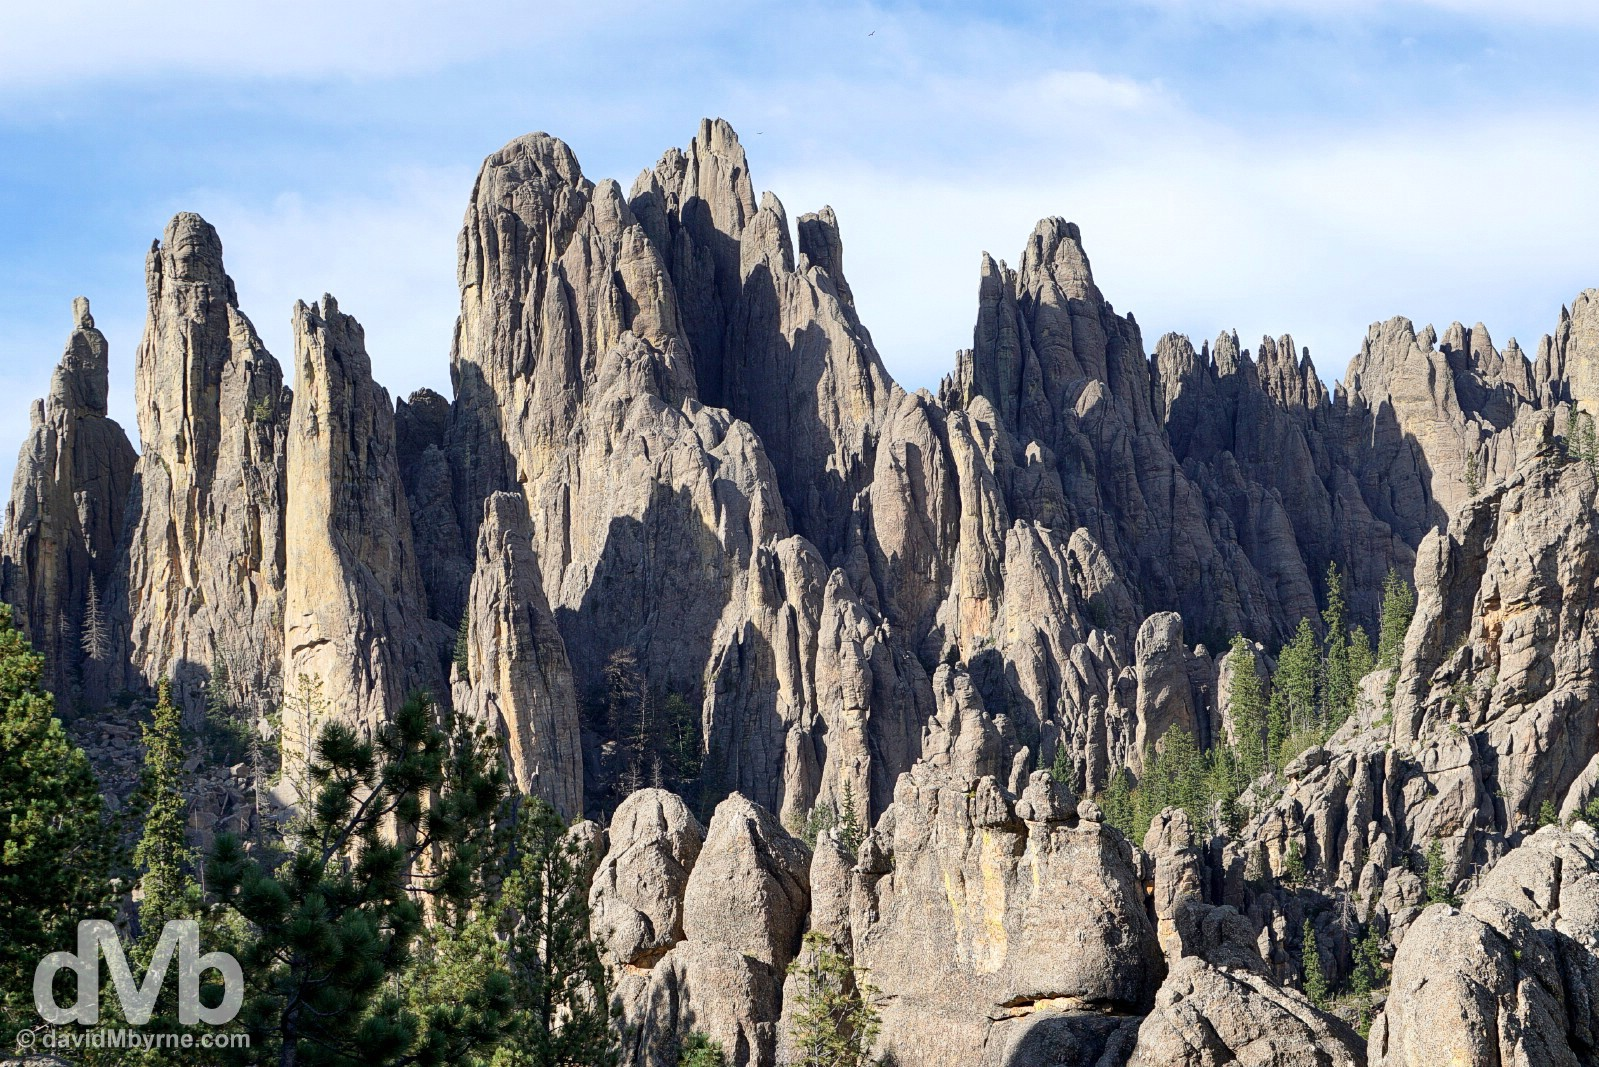 The Cathedral Spires of Custer State Park, Black Hills, South Dakota. September 2, 2016.